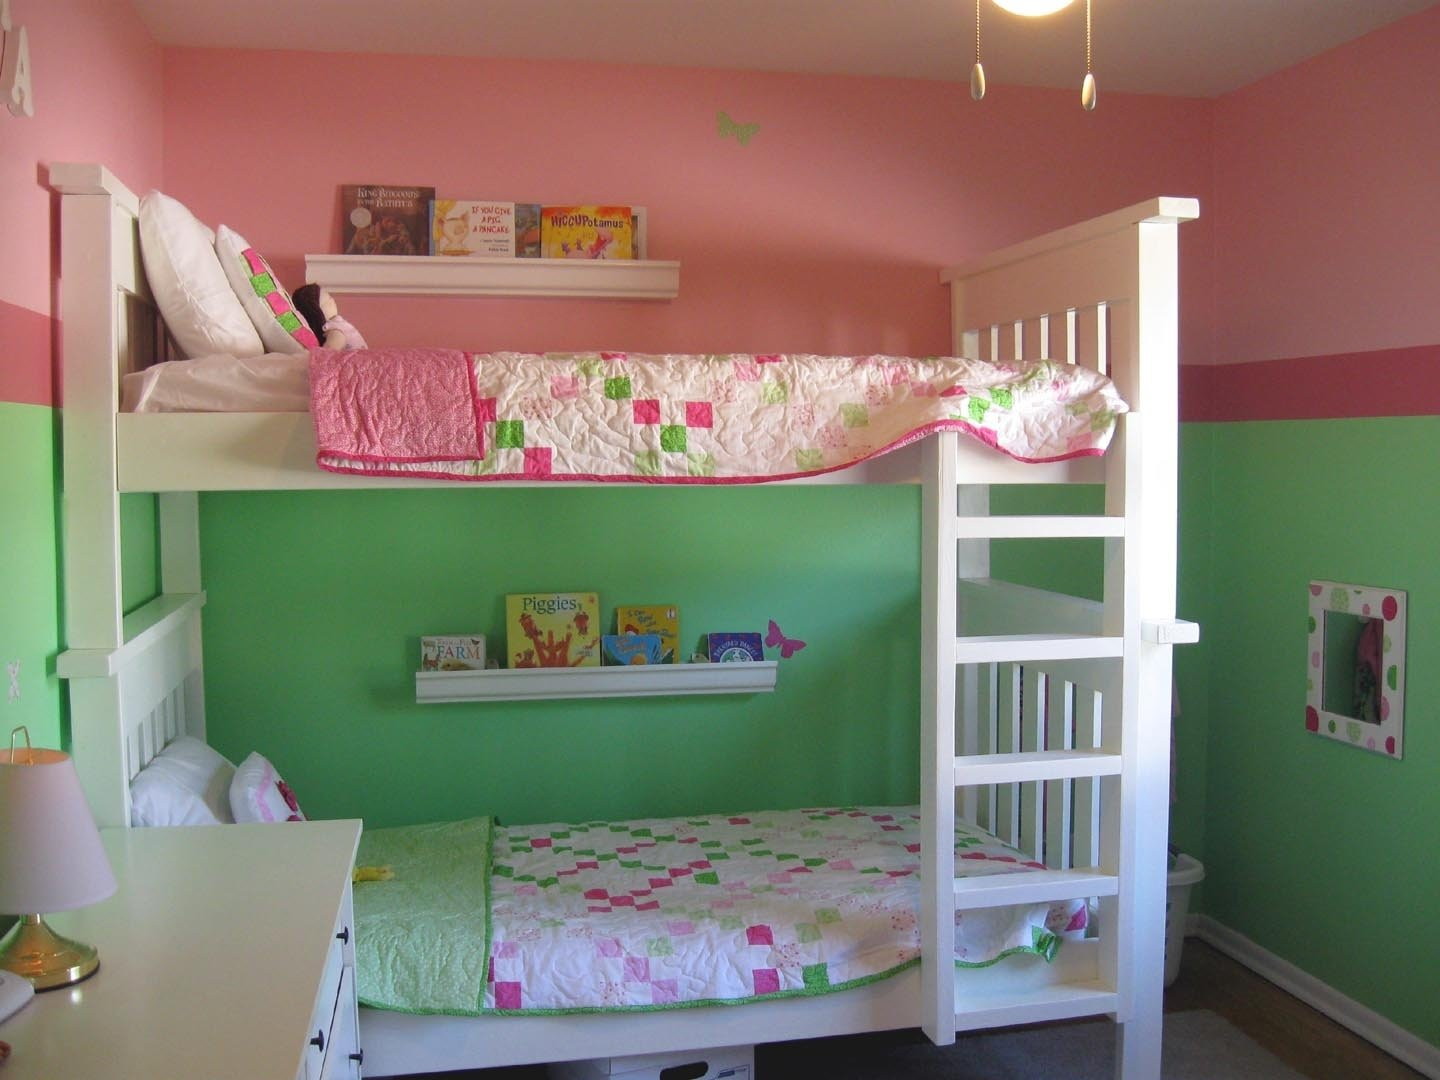 10 Gorgeous Girl And Boy Room Ideas shared pink little girls room redo decobizz 1 2020